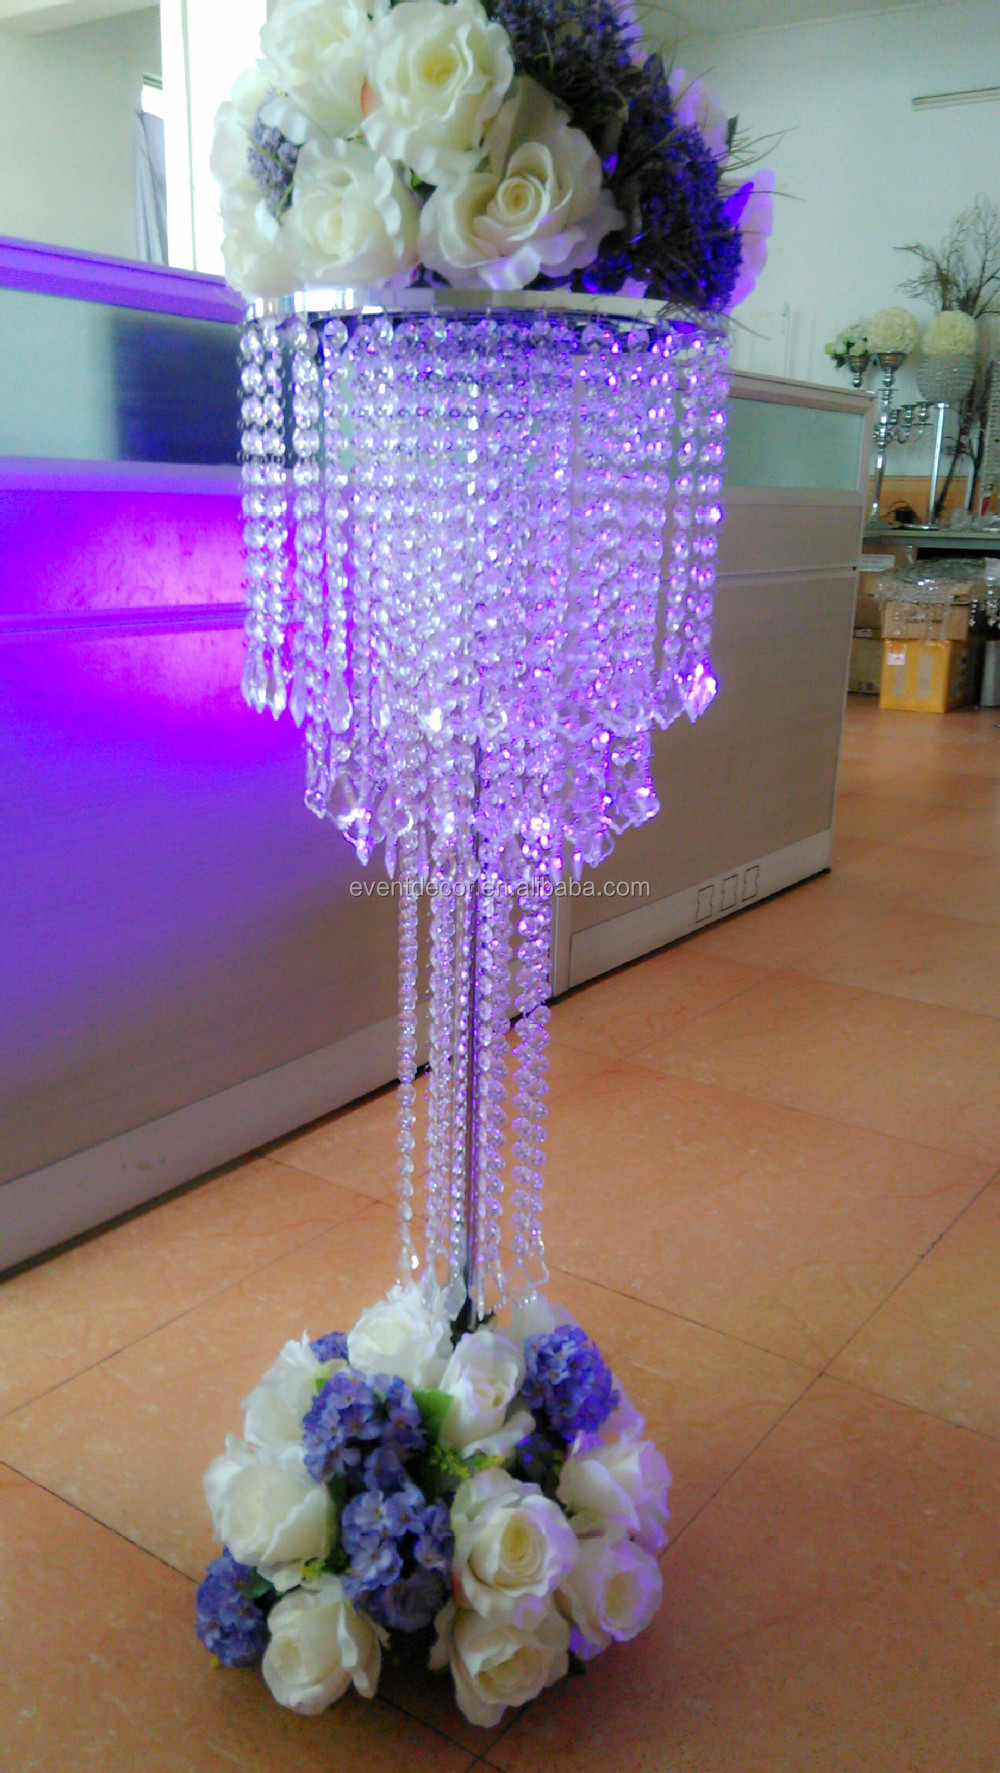 Large Crystal Chandelier Table Top Centerpieces For